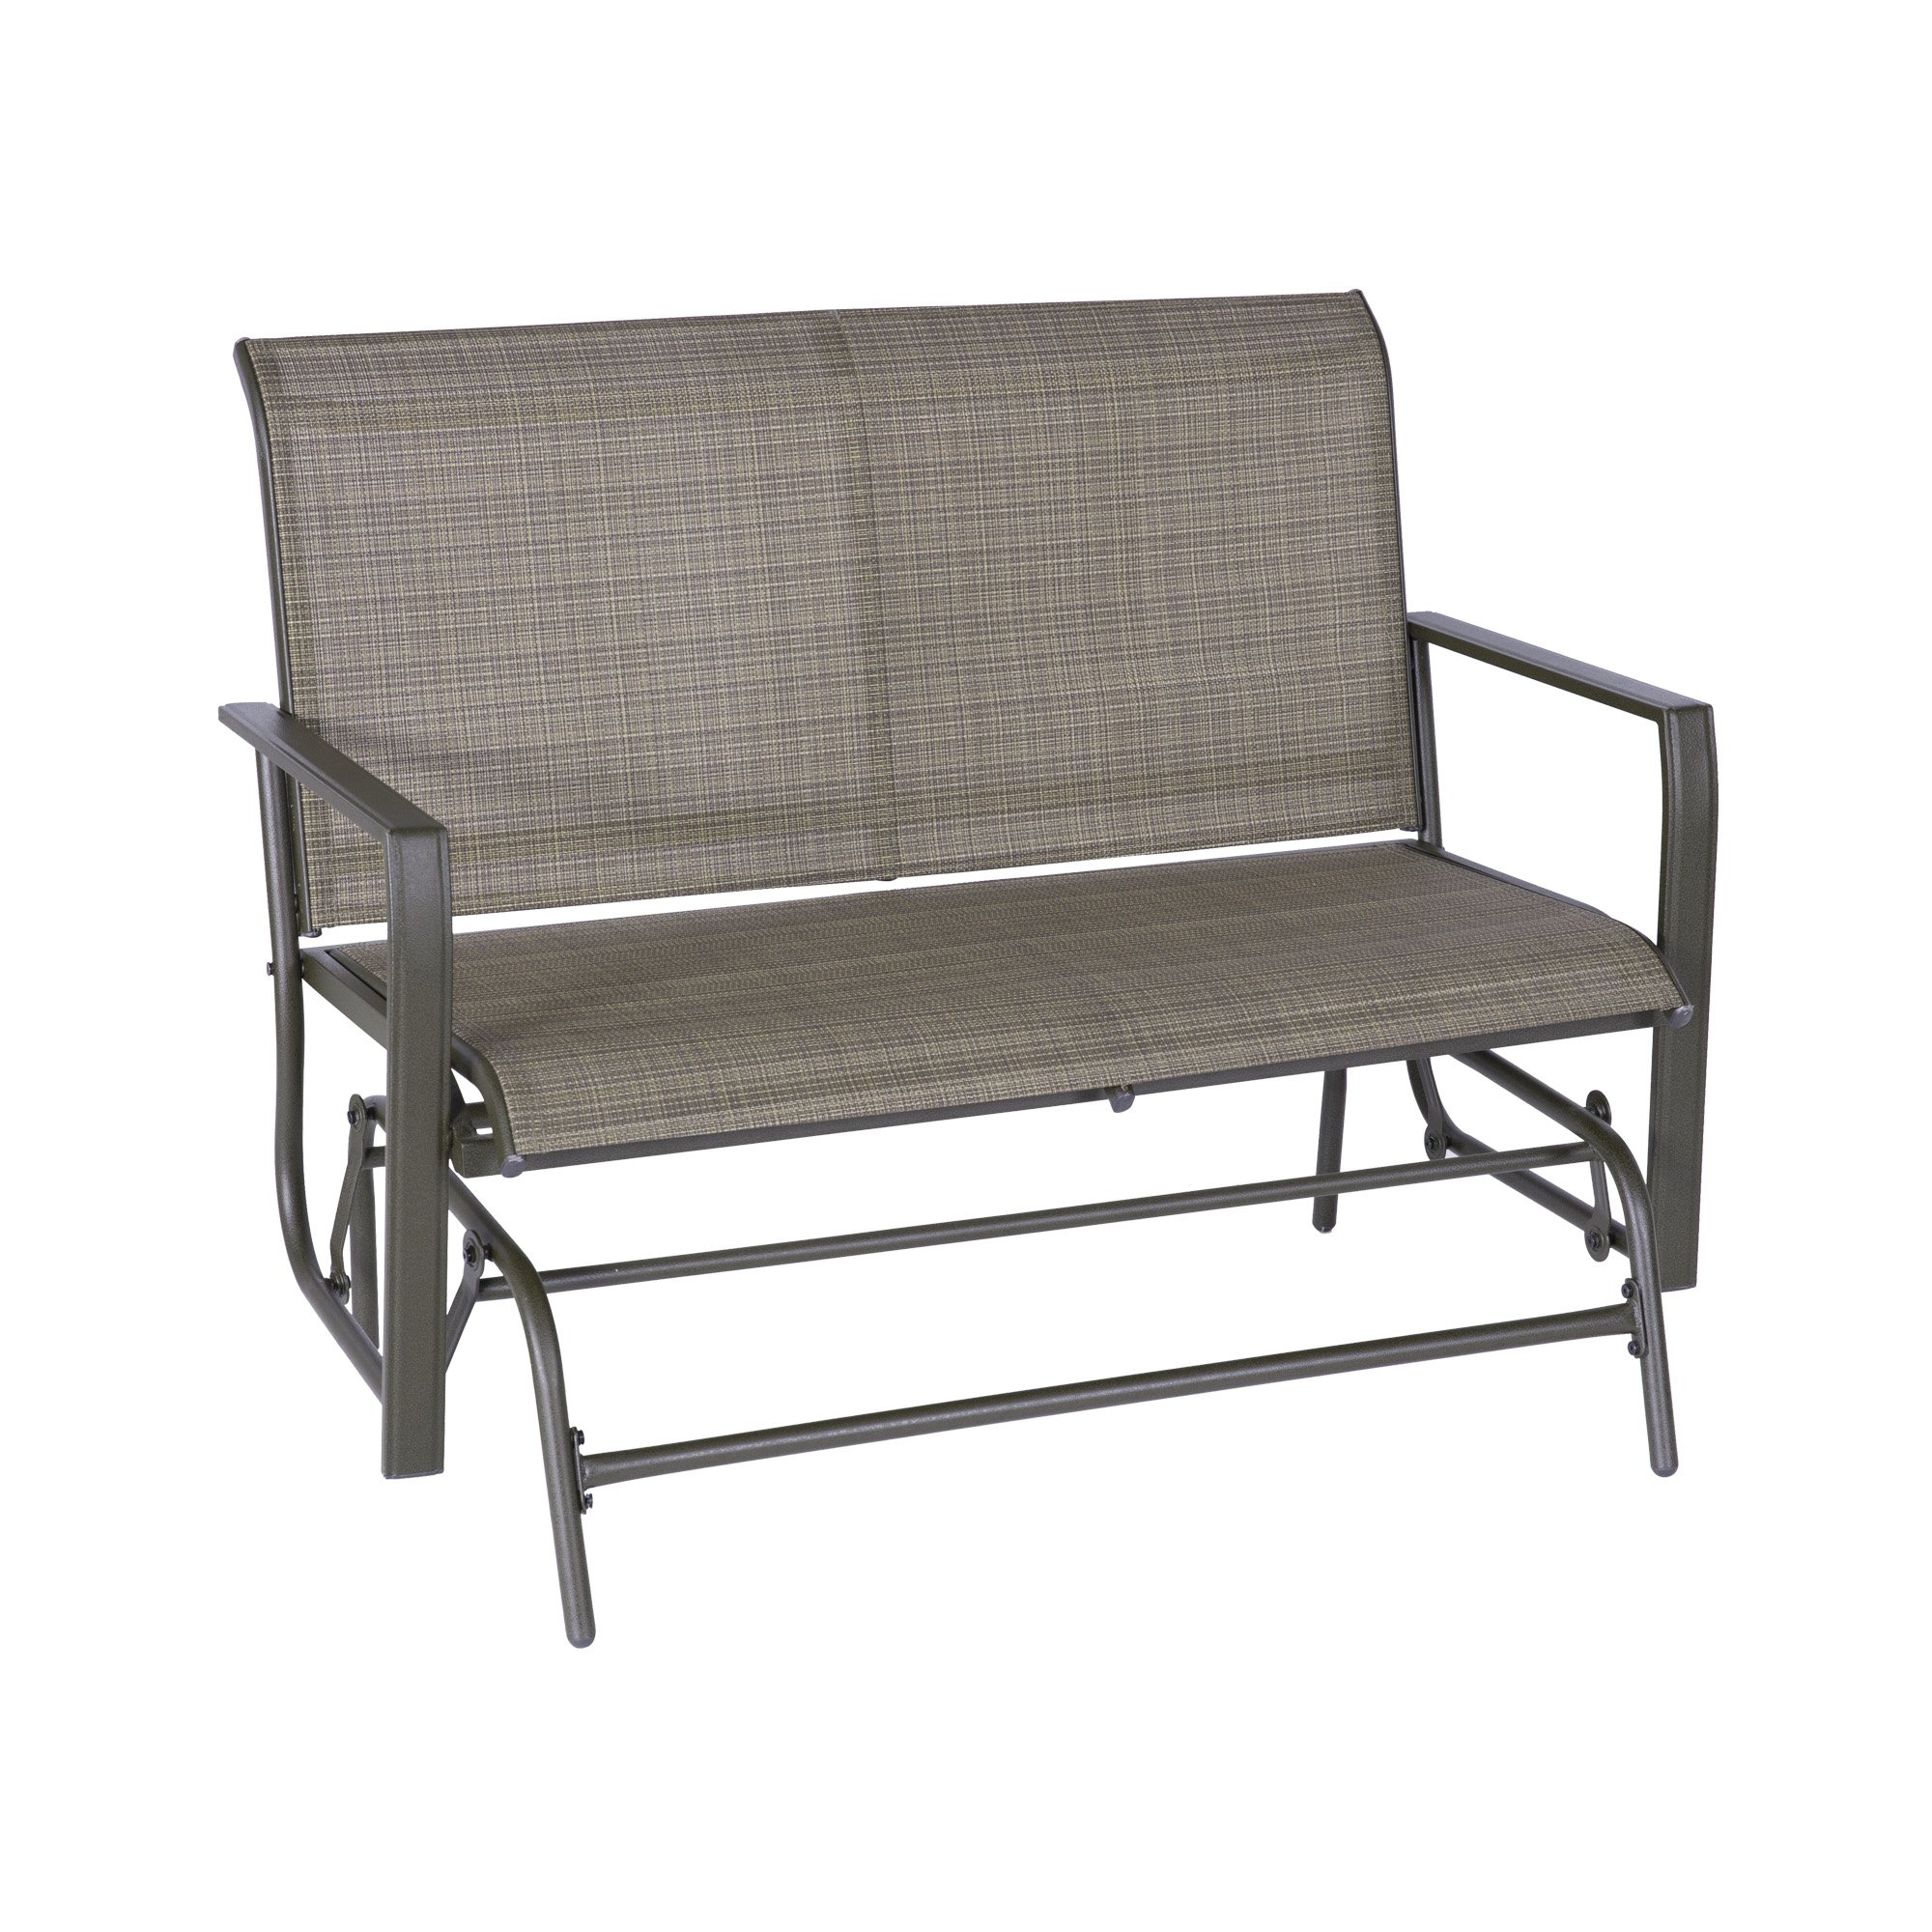 Famous Patio Glider Bench Loveseat Outdoor Cushioed 2 Person In Outdoor Swing Glider Chairs With Powder Coated Steel Frame (Gallery 17 of 30)